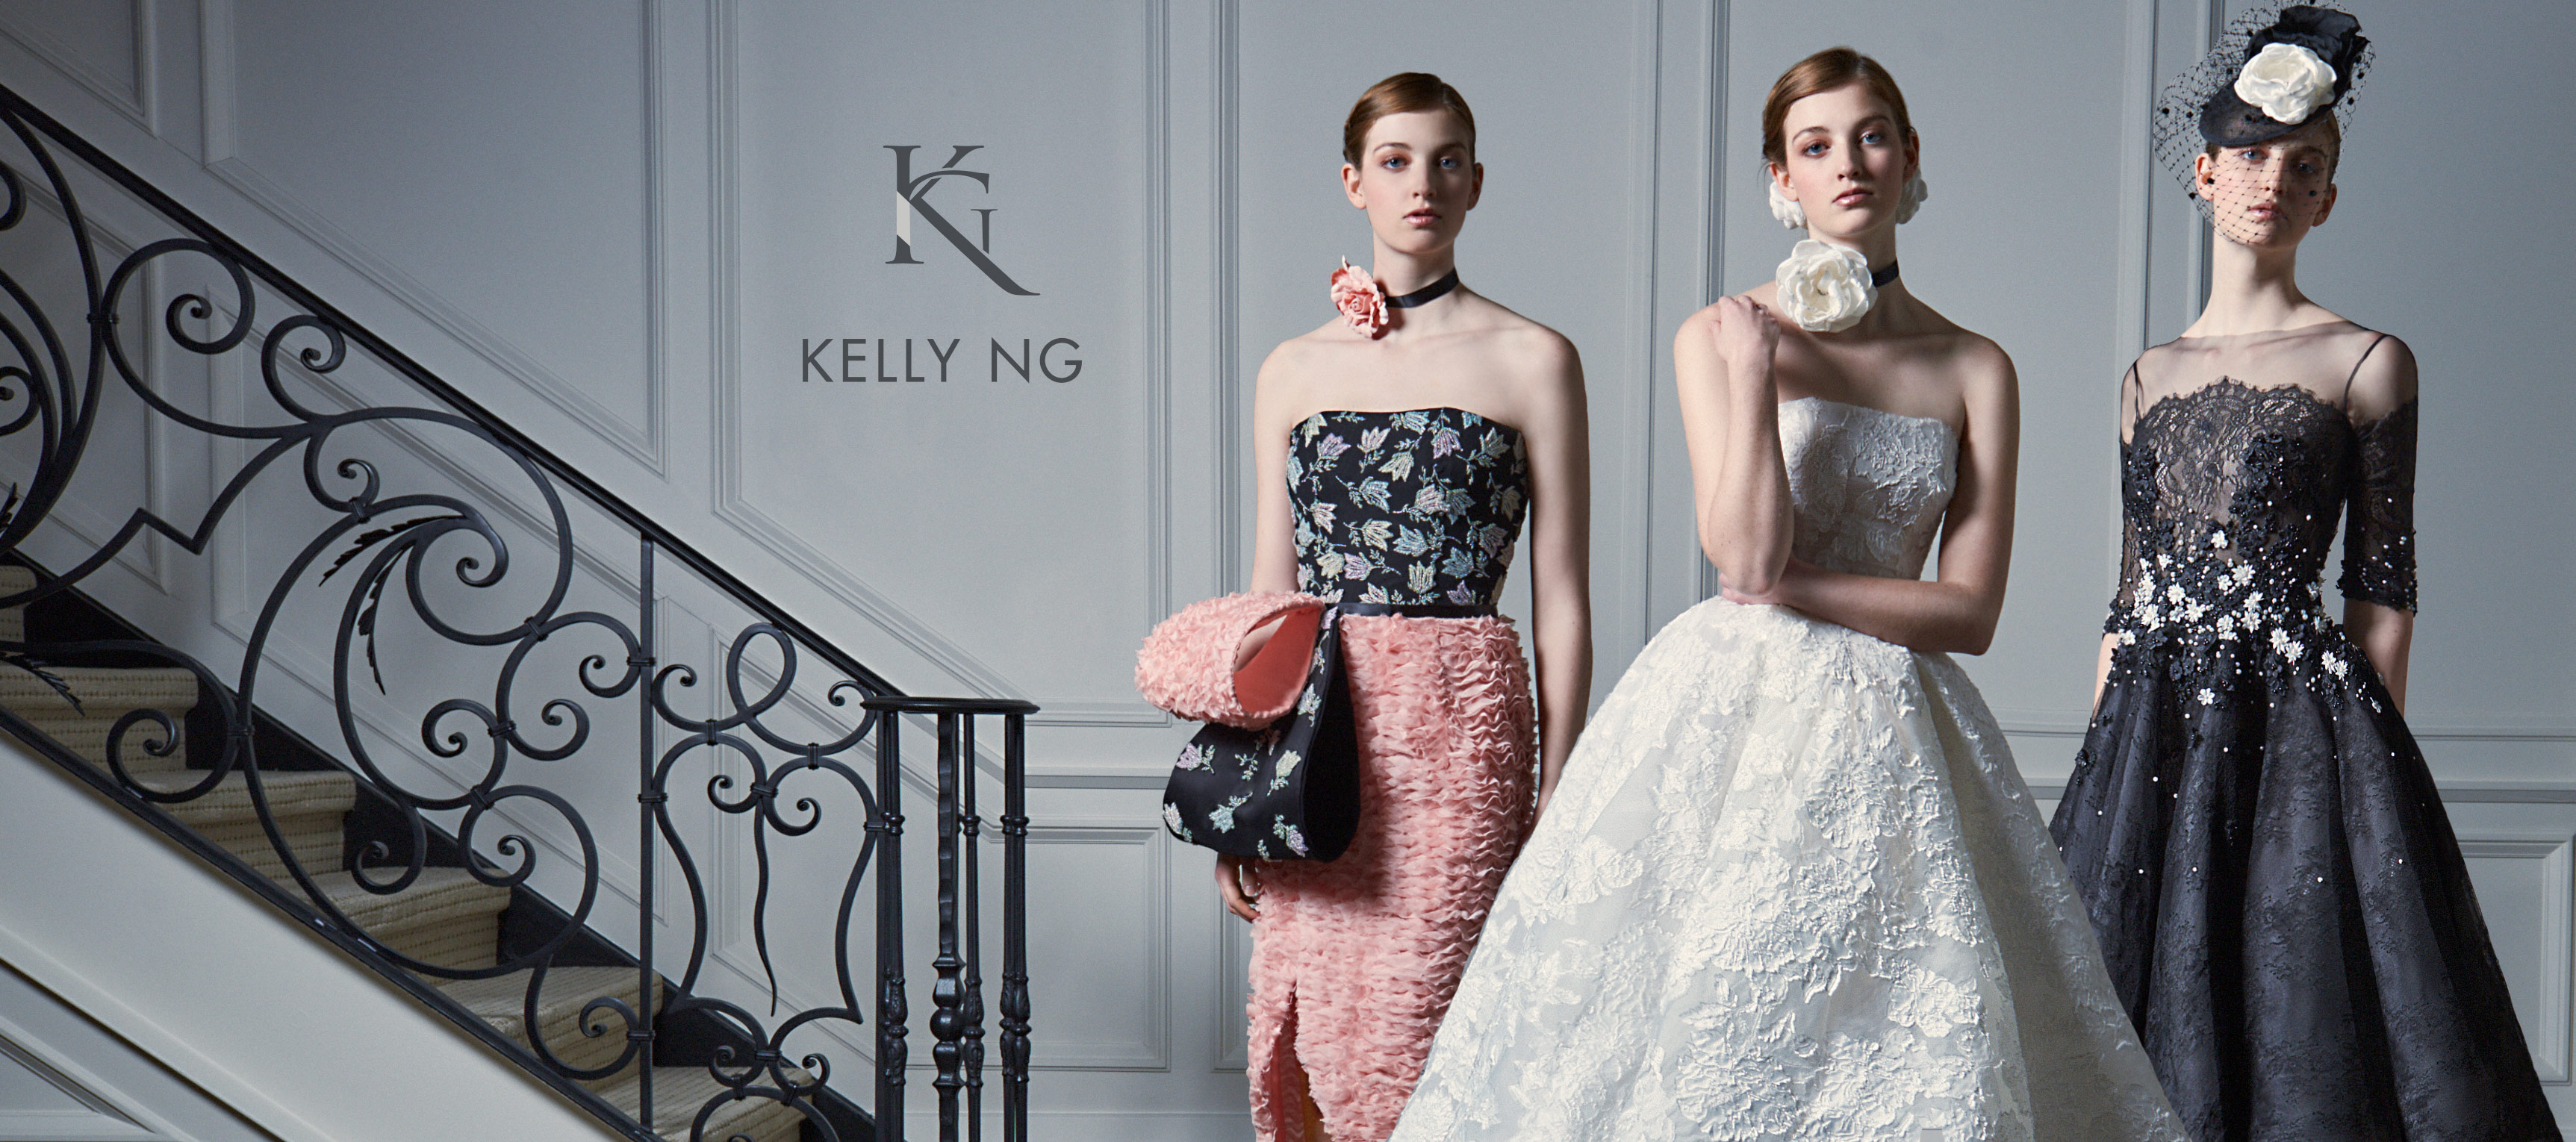 Evening Dresses & Gowns Collection in Toronto - Kelly NG Couture